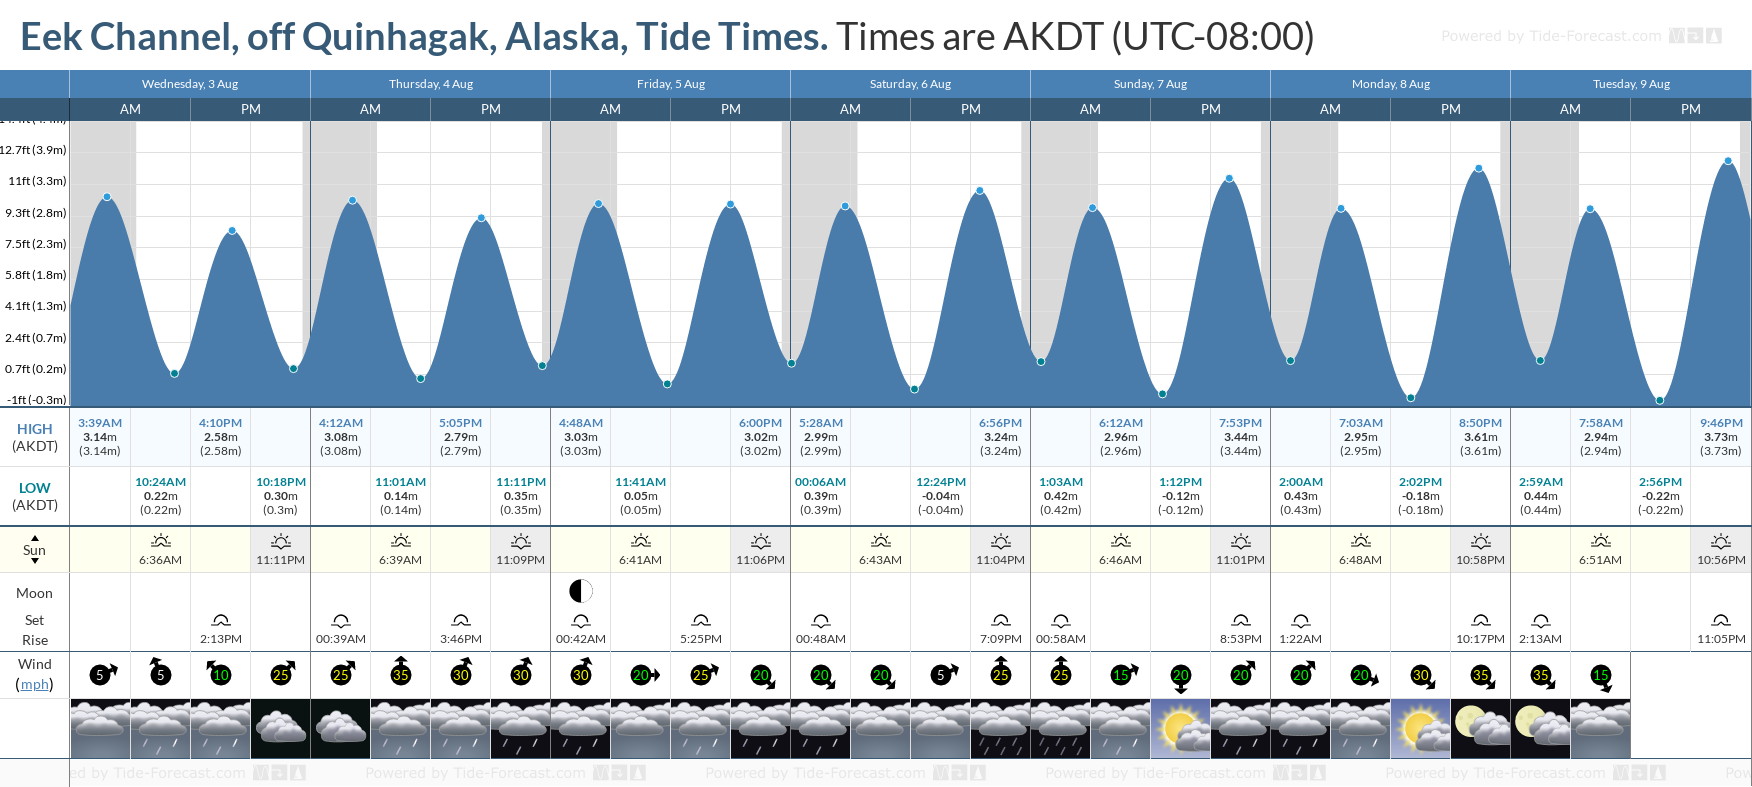 Eek Channel, off Quinhagak, Alaska Tide Chart including high and low tide tide times for the next 7 days